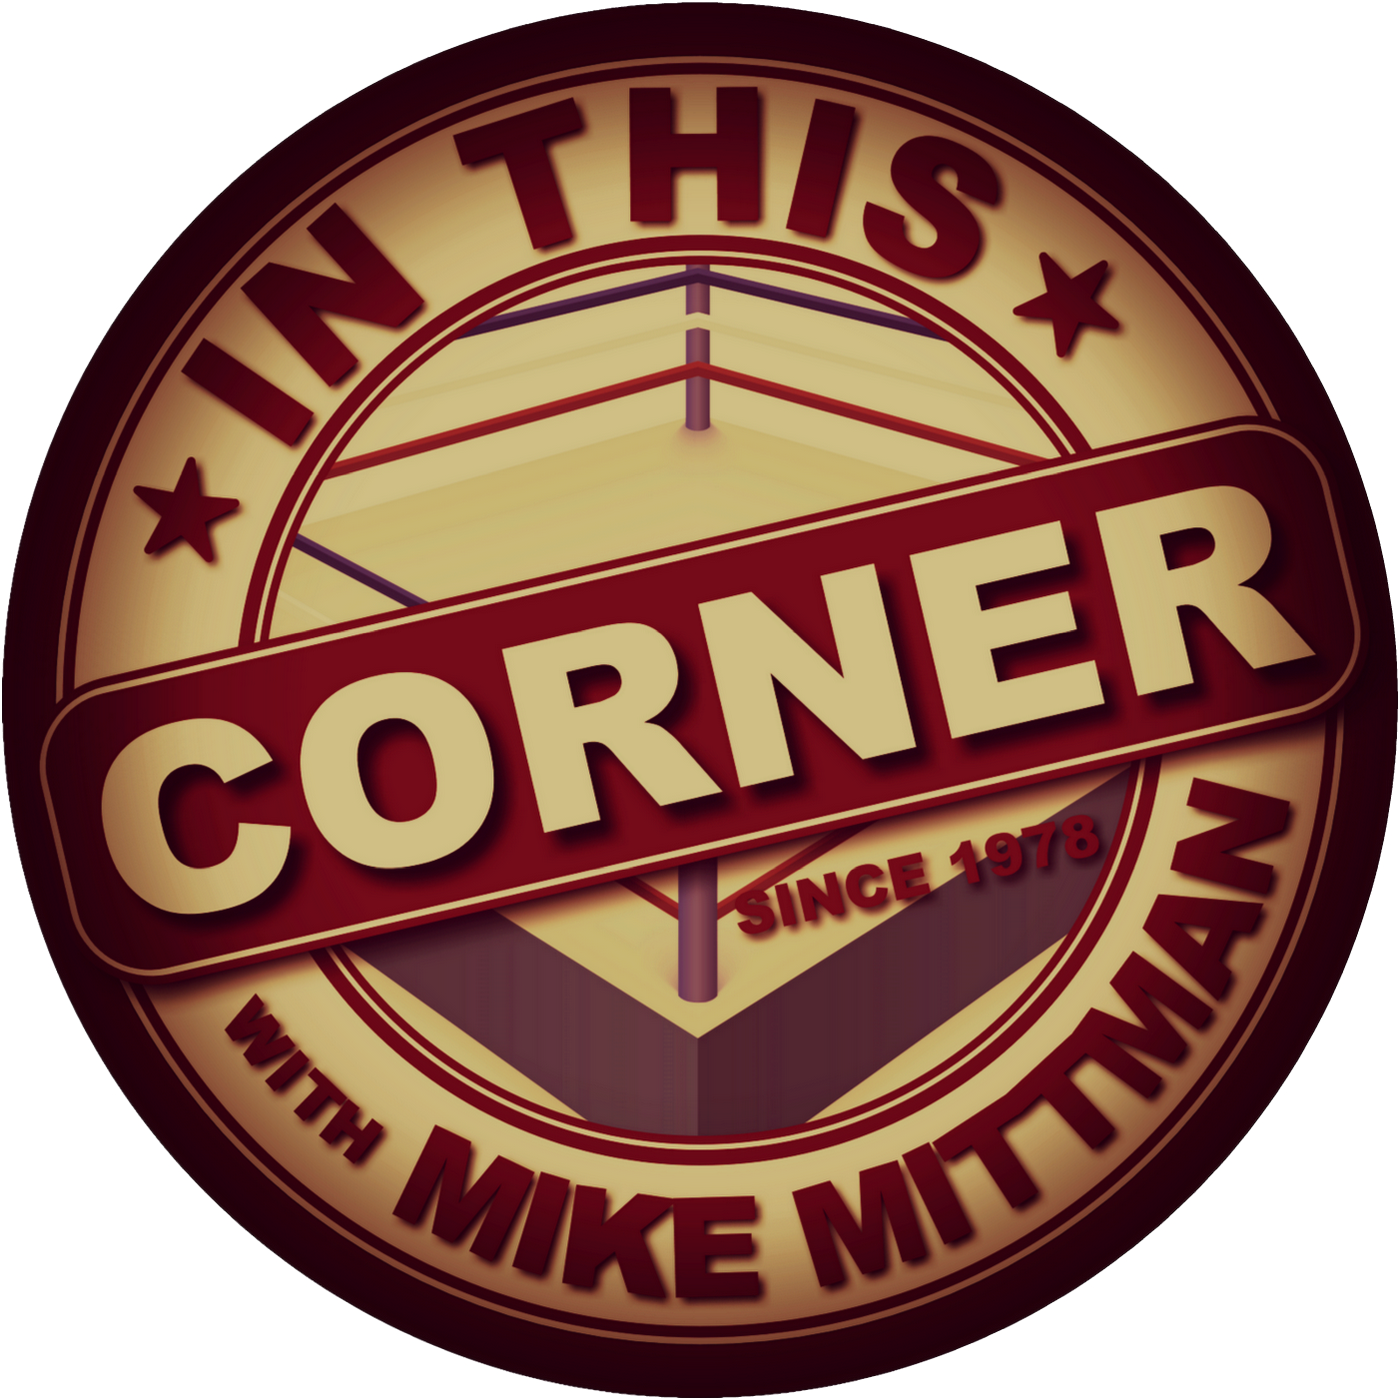 In This Corner |  Mike Mittman's Boxing Show  |  Subscribe on iTunes